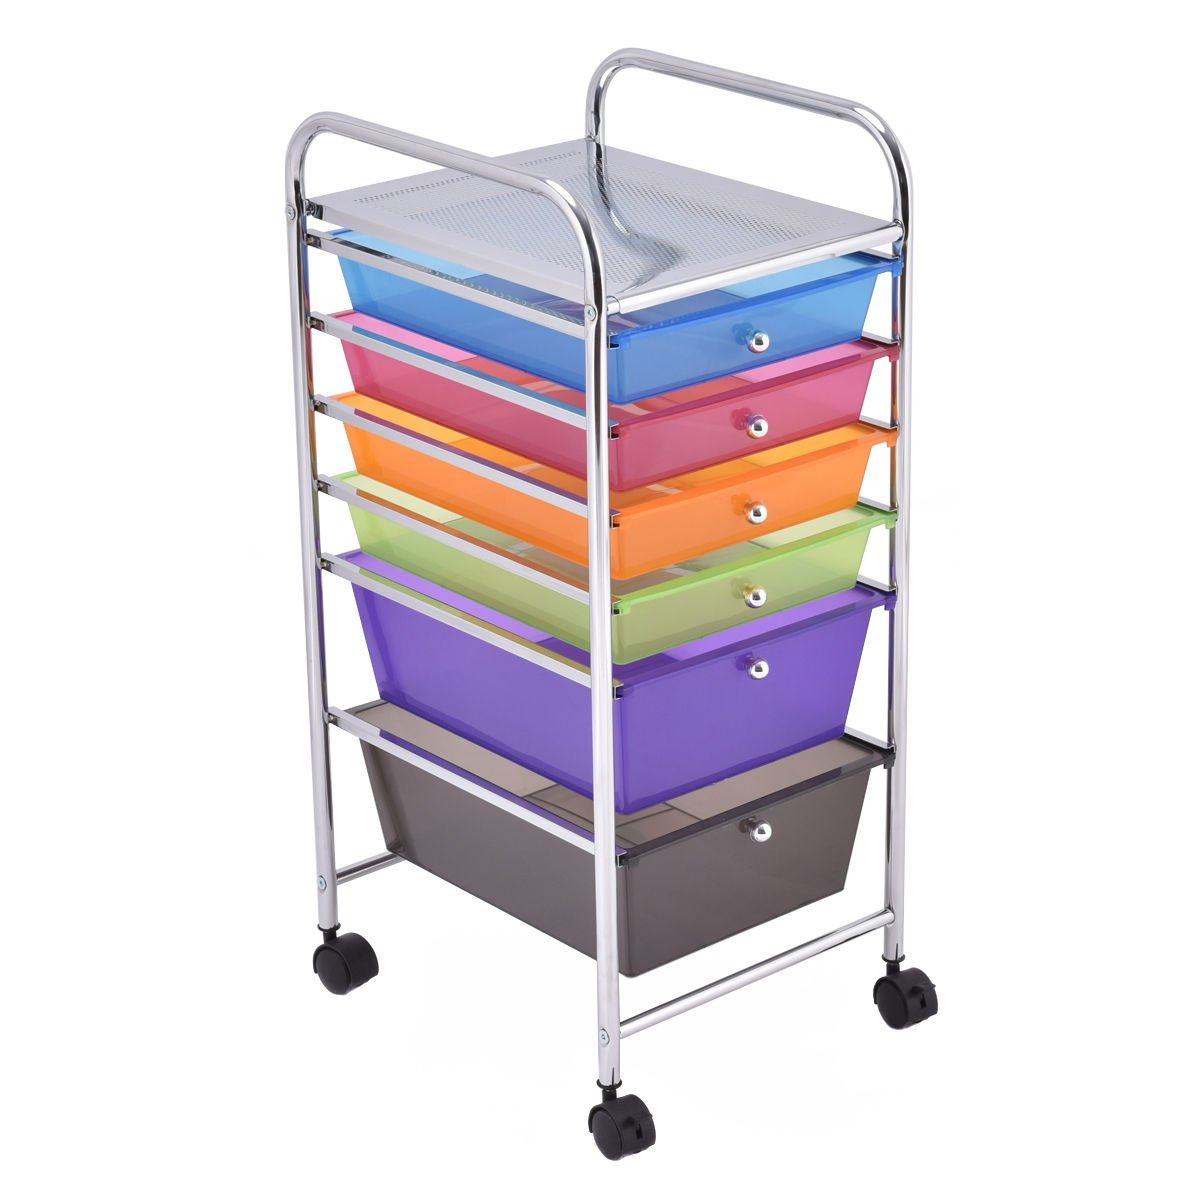 Roller drawer organizer best watercolour markers